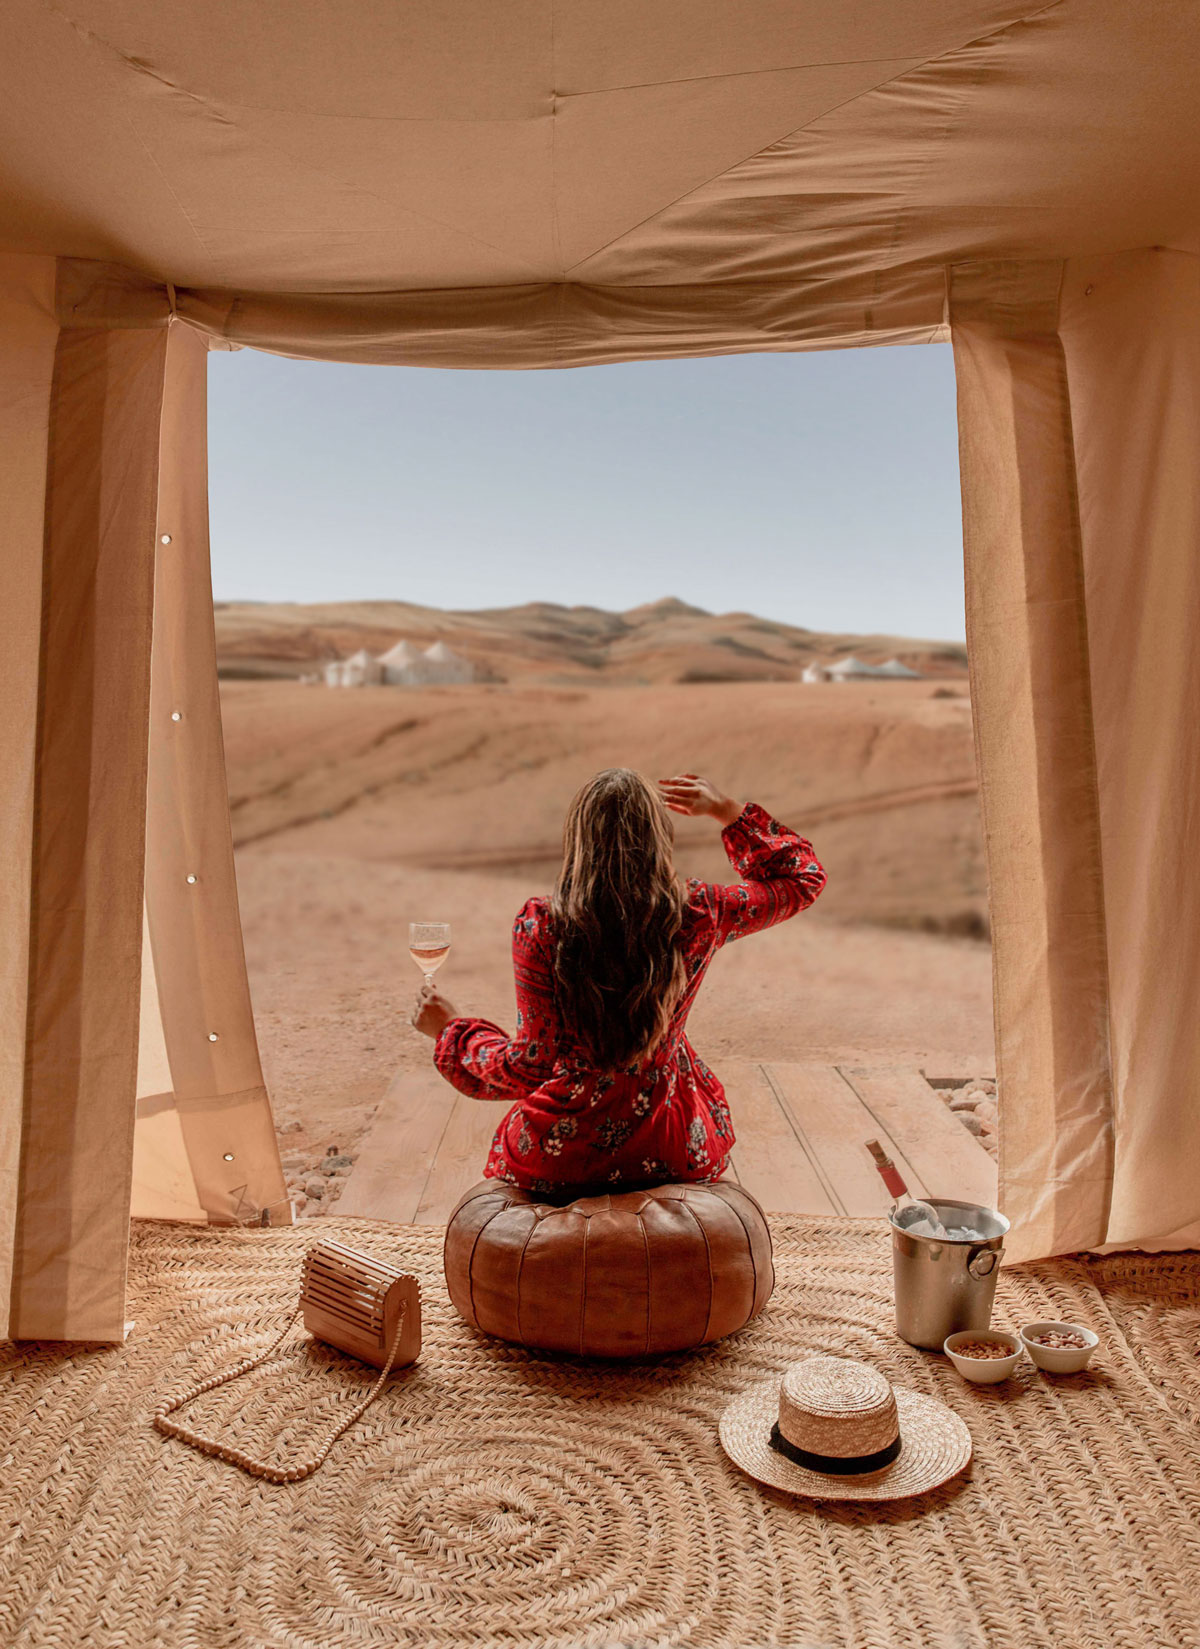 best-hotels-morocco-desert-camp-clamping-what-to-do-in-morocco-kelseyinlondon-kelsey-heinrichs-scarabeo-camp-review